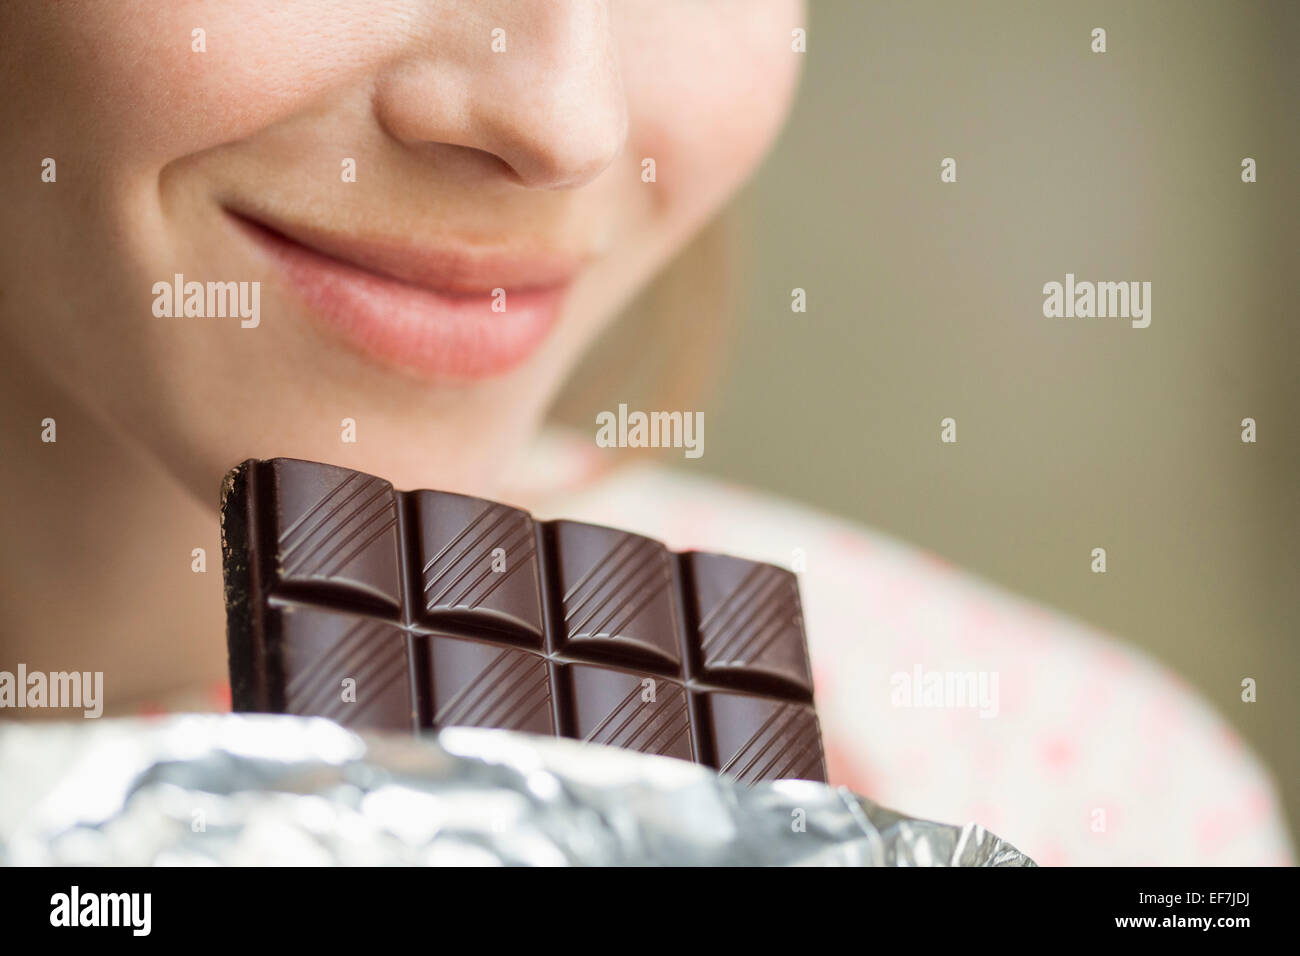 Woman eating a chocolate Photo Stock